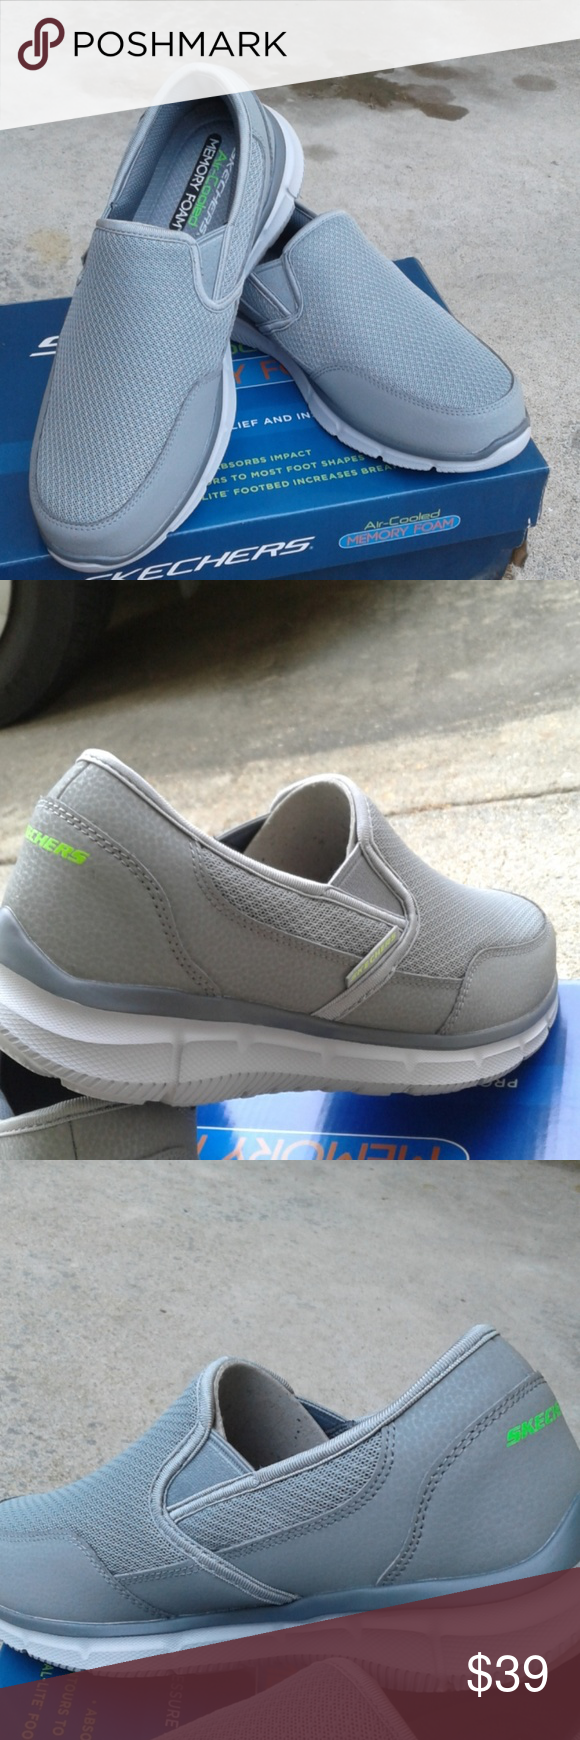 New Schecher Air Cooled Memory Foam Nwt Skechers Slip On